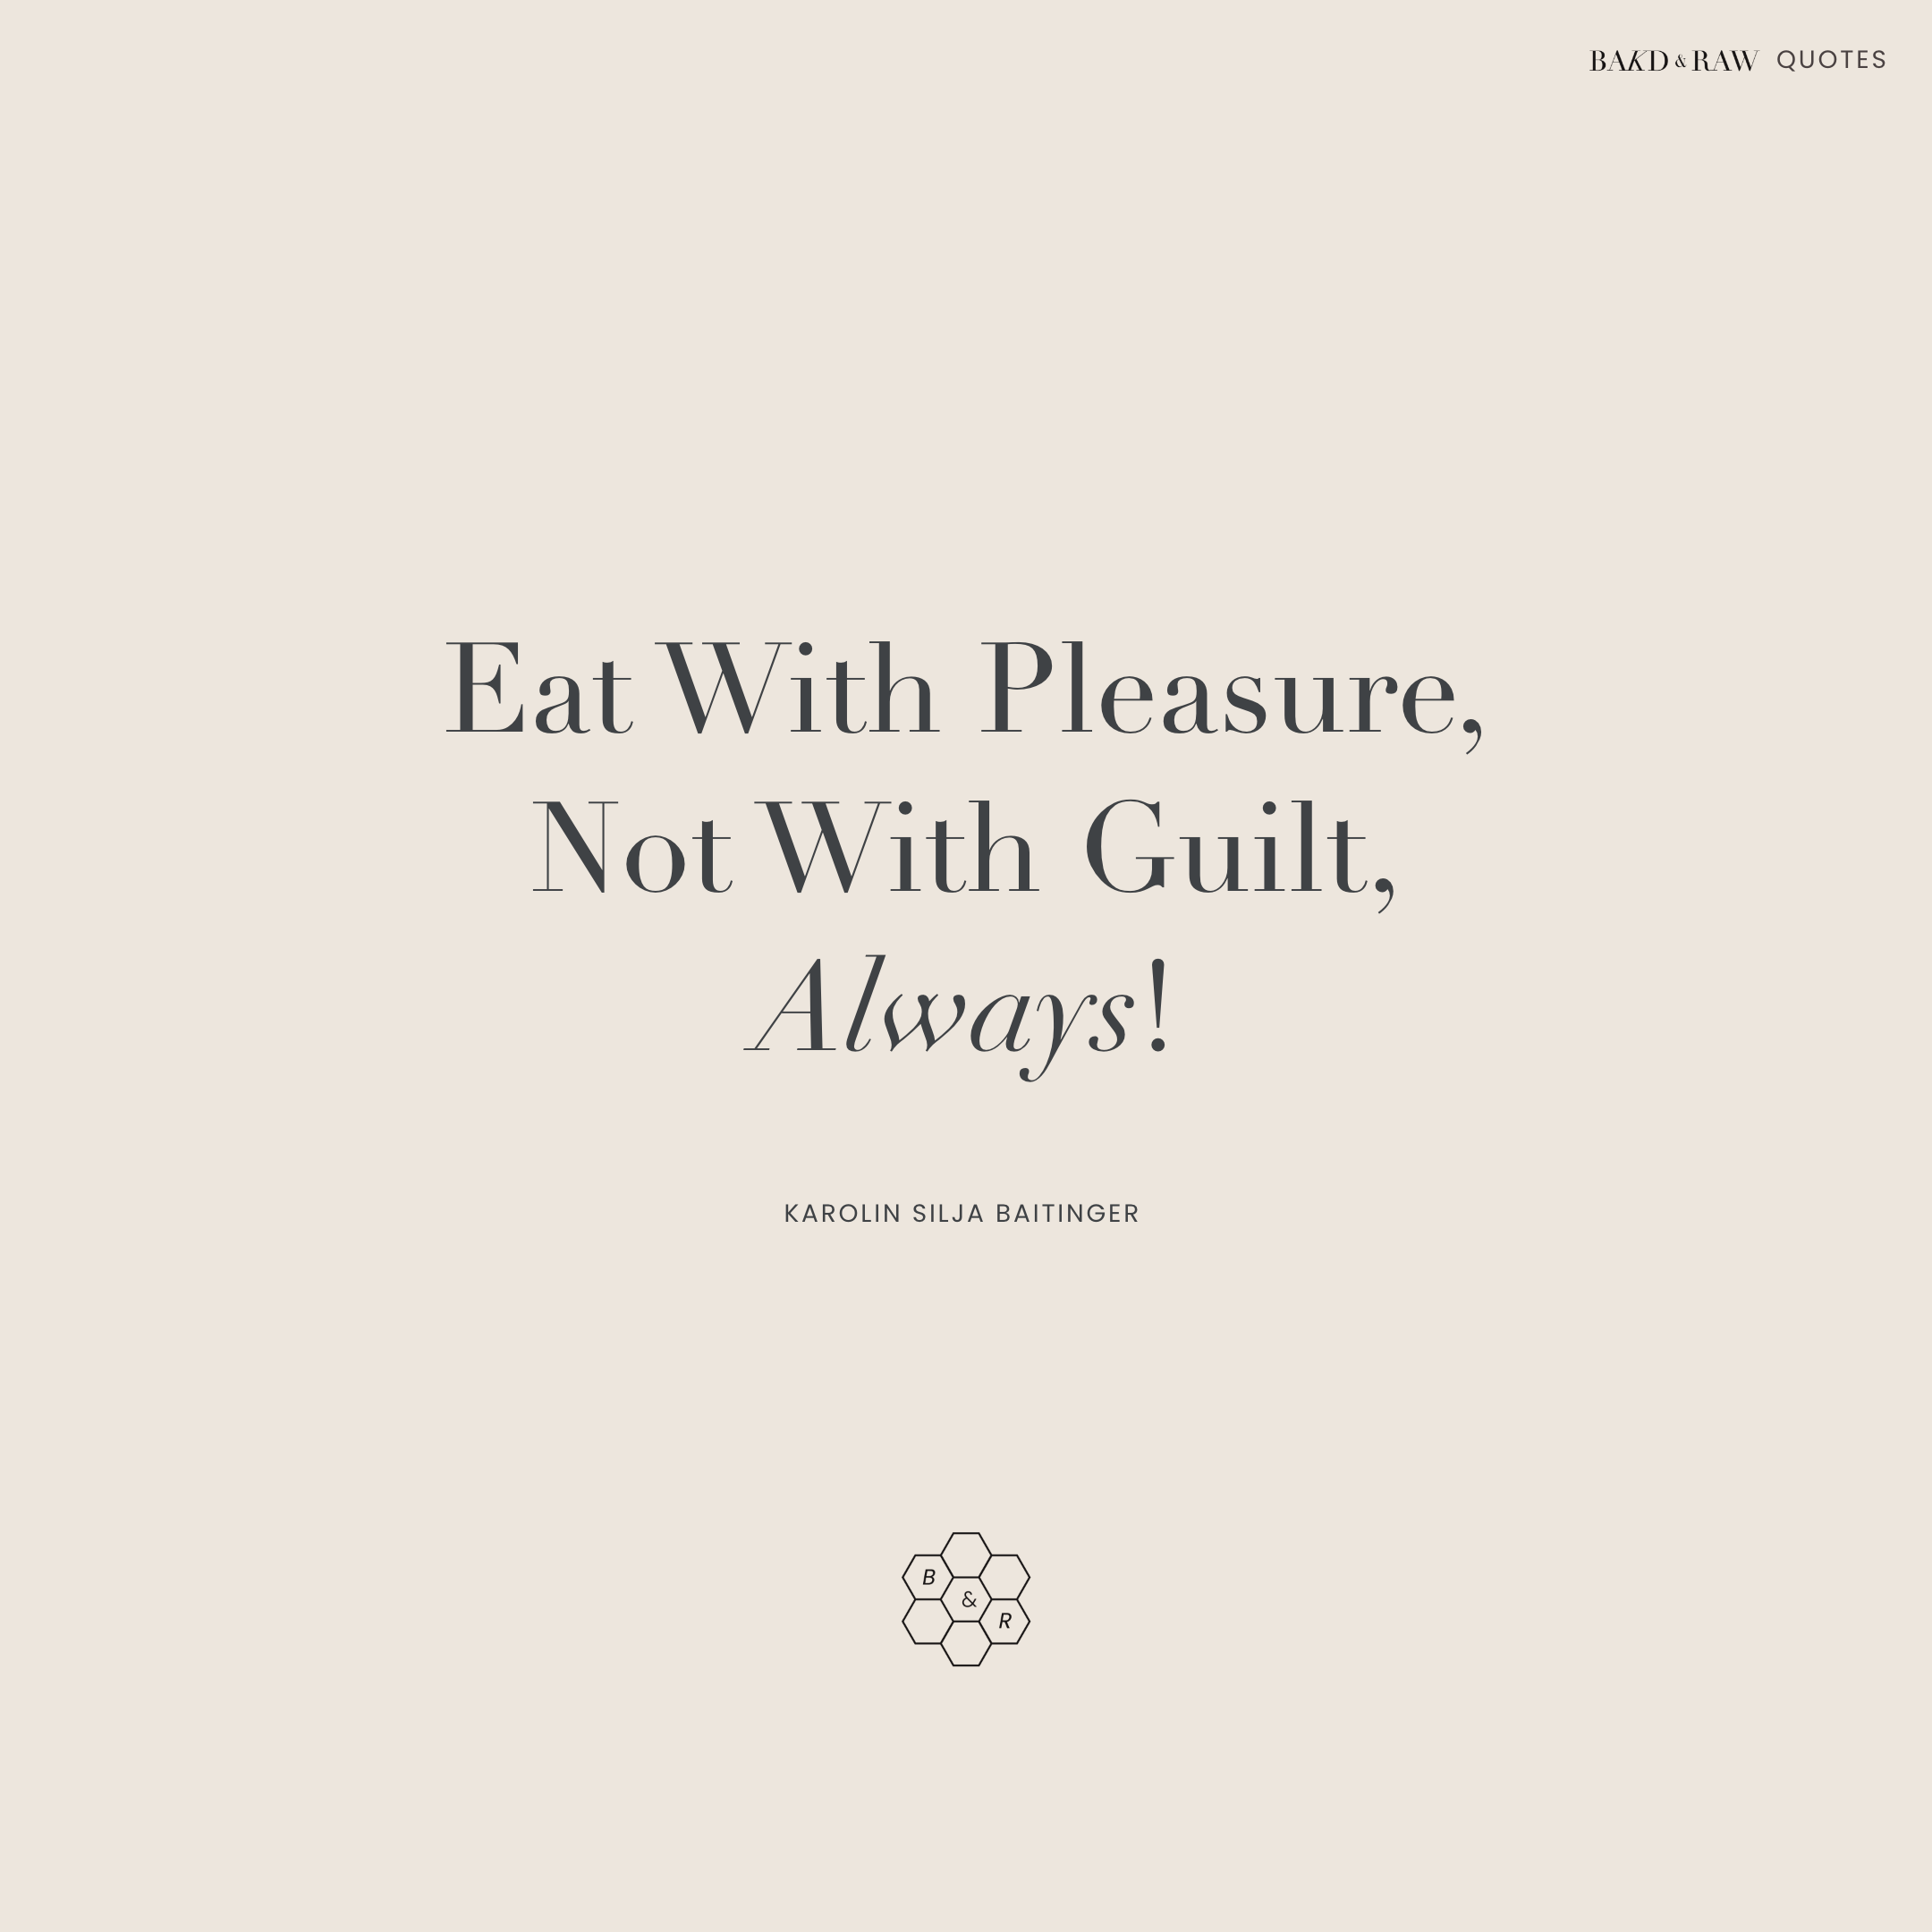 Eat with pleasure, Bakd&Raw Food Quotes by Karolin Baitinger